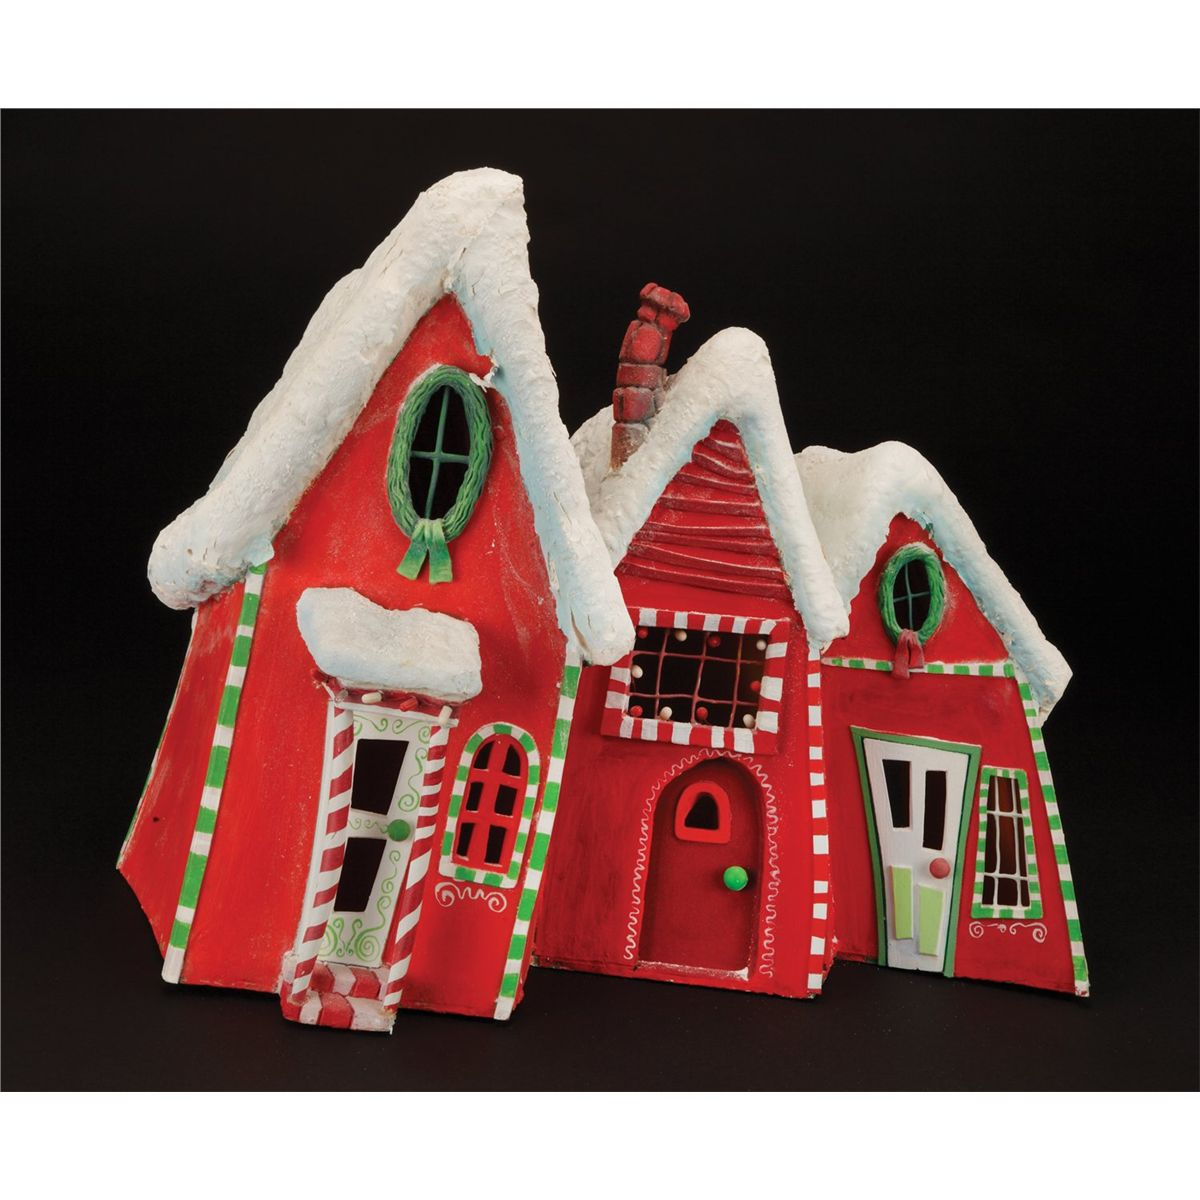 Nightmare Before Christmas Houses.Christmas Town Houses From The Nightmare Before Christmas